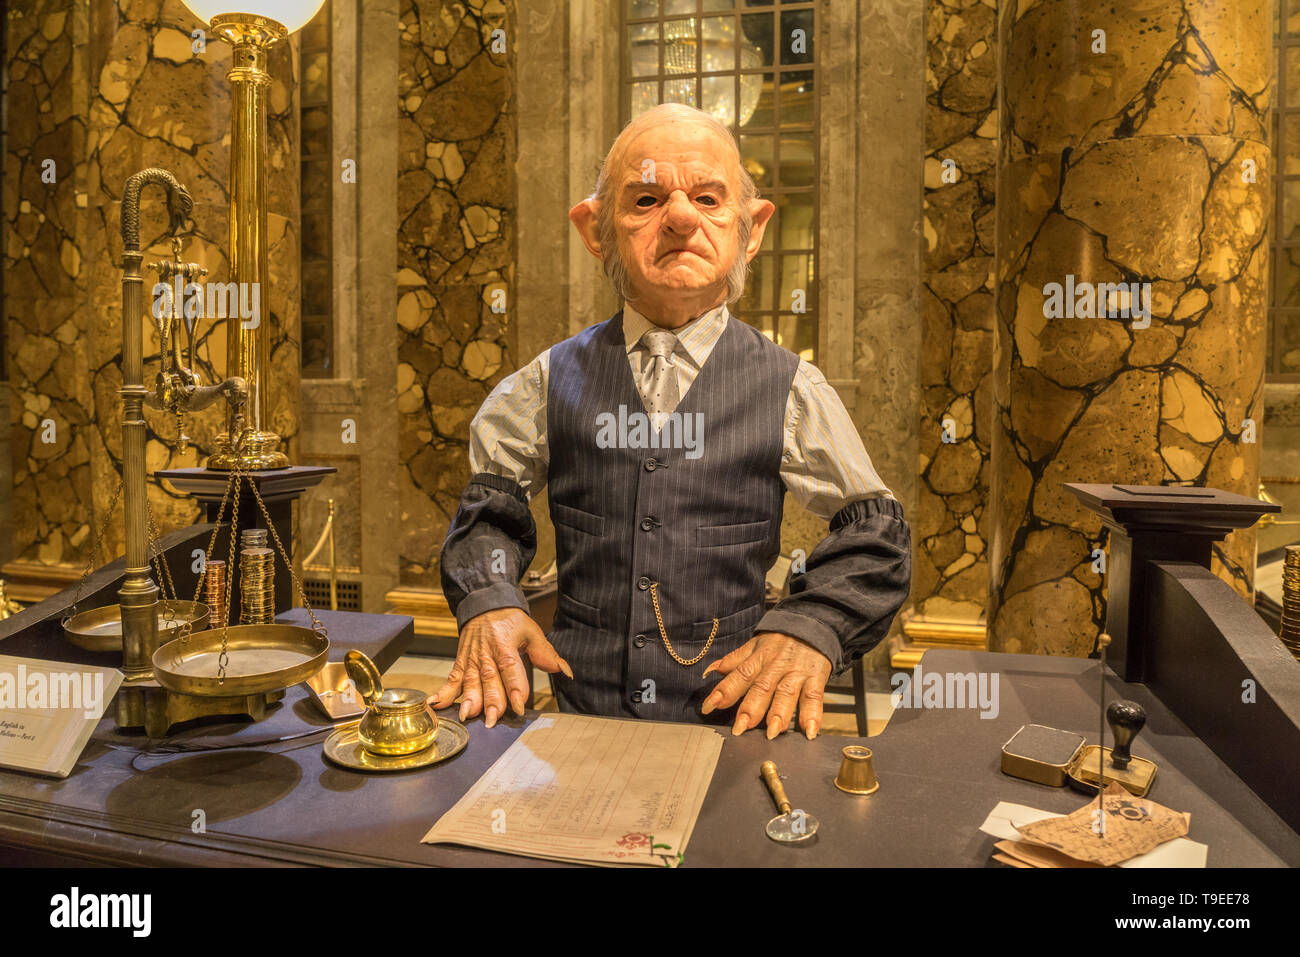 Page 2 Harry Potter Costumes High Resolution Stock Photography And Images Alamy Elenco de harry potter e a pedra filosofal, um filme de chris columbus com daniel radcliffe, rupert grint, emma watson, robbie griphook the goblin verne troyer. https www alamy com goblin cashier in gringotts bank props and costumes used in the production of films warner bros studio tour the making of harry potter london image246795564 html